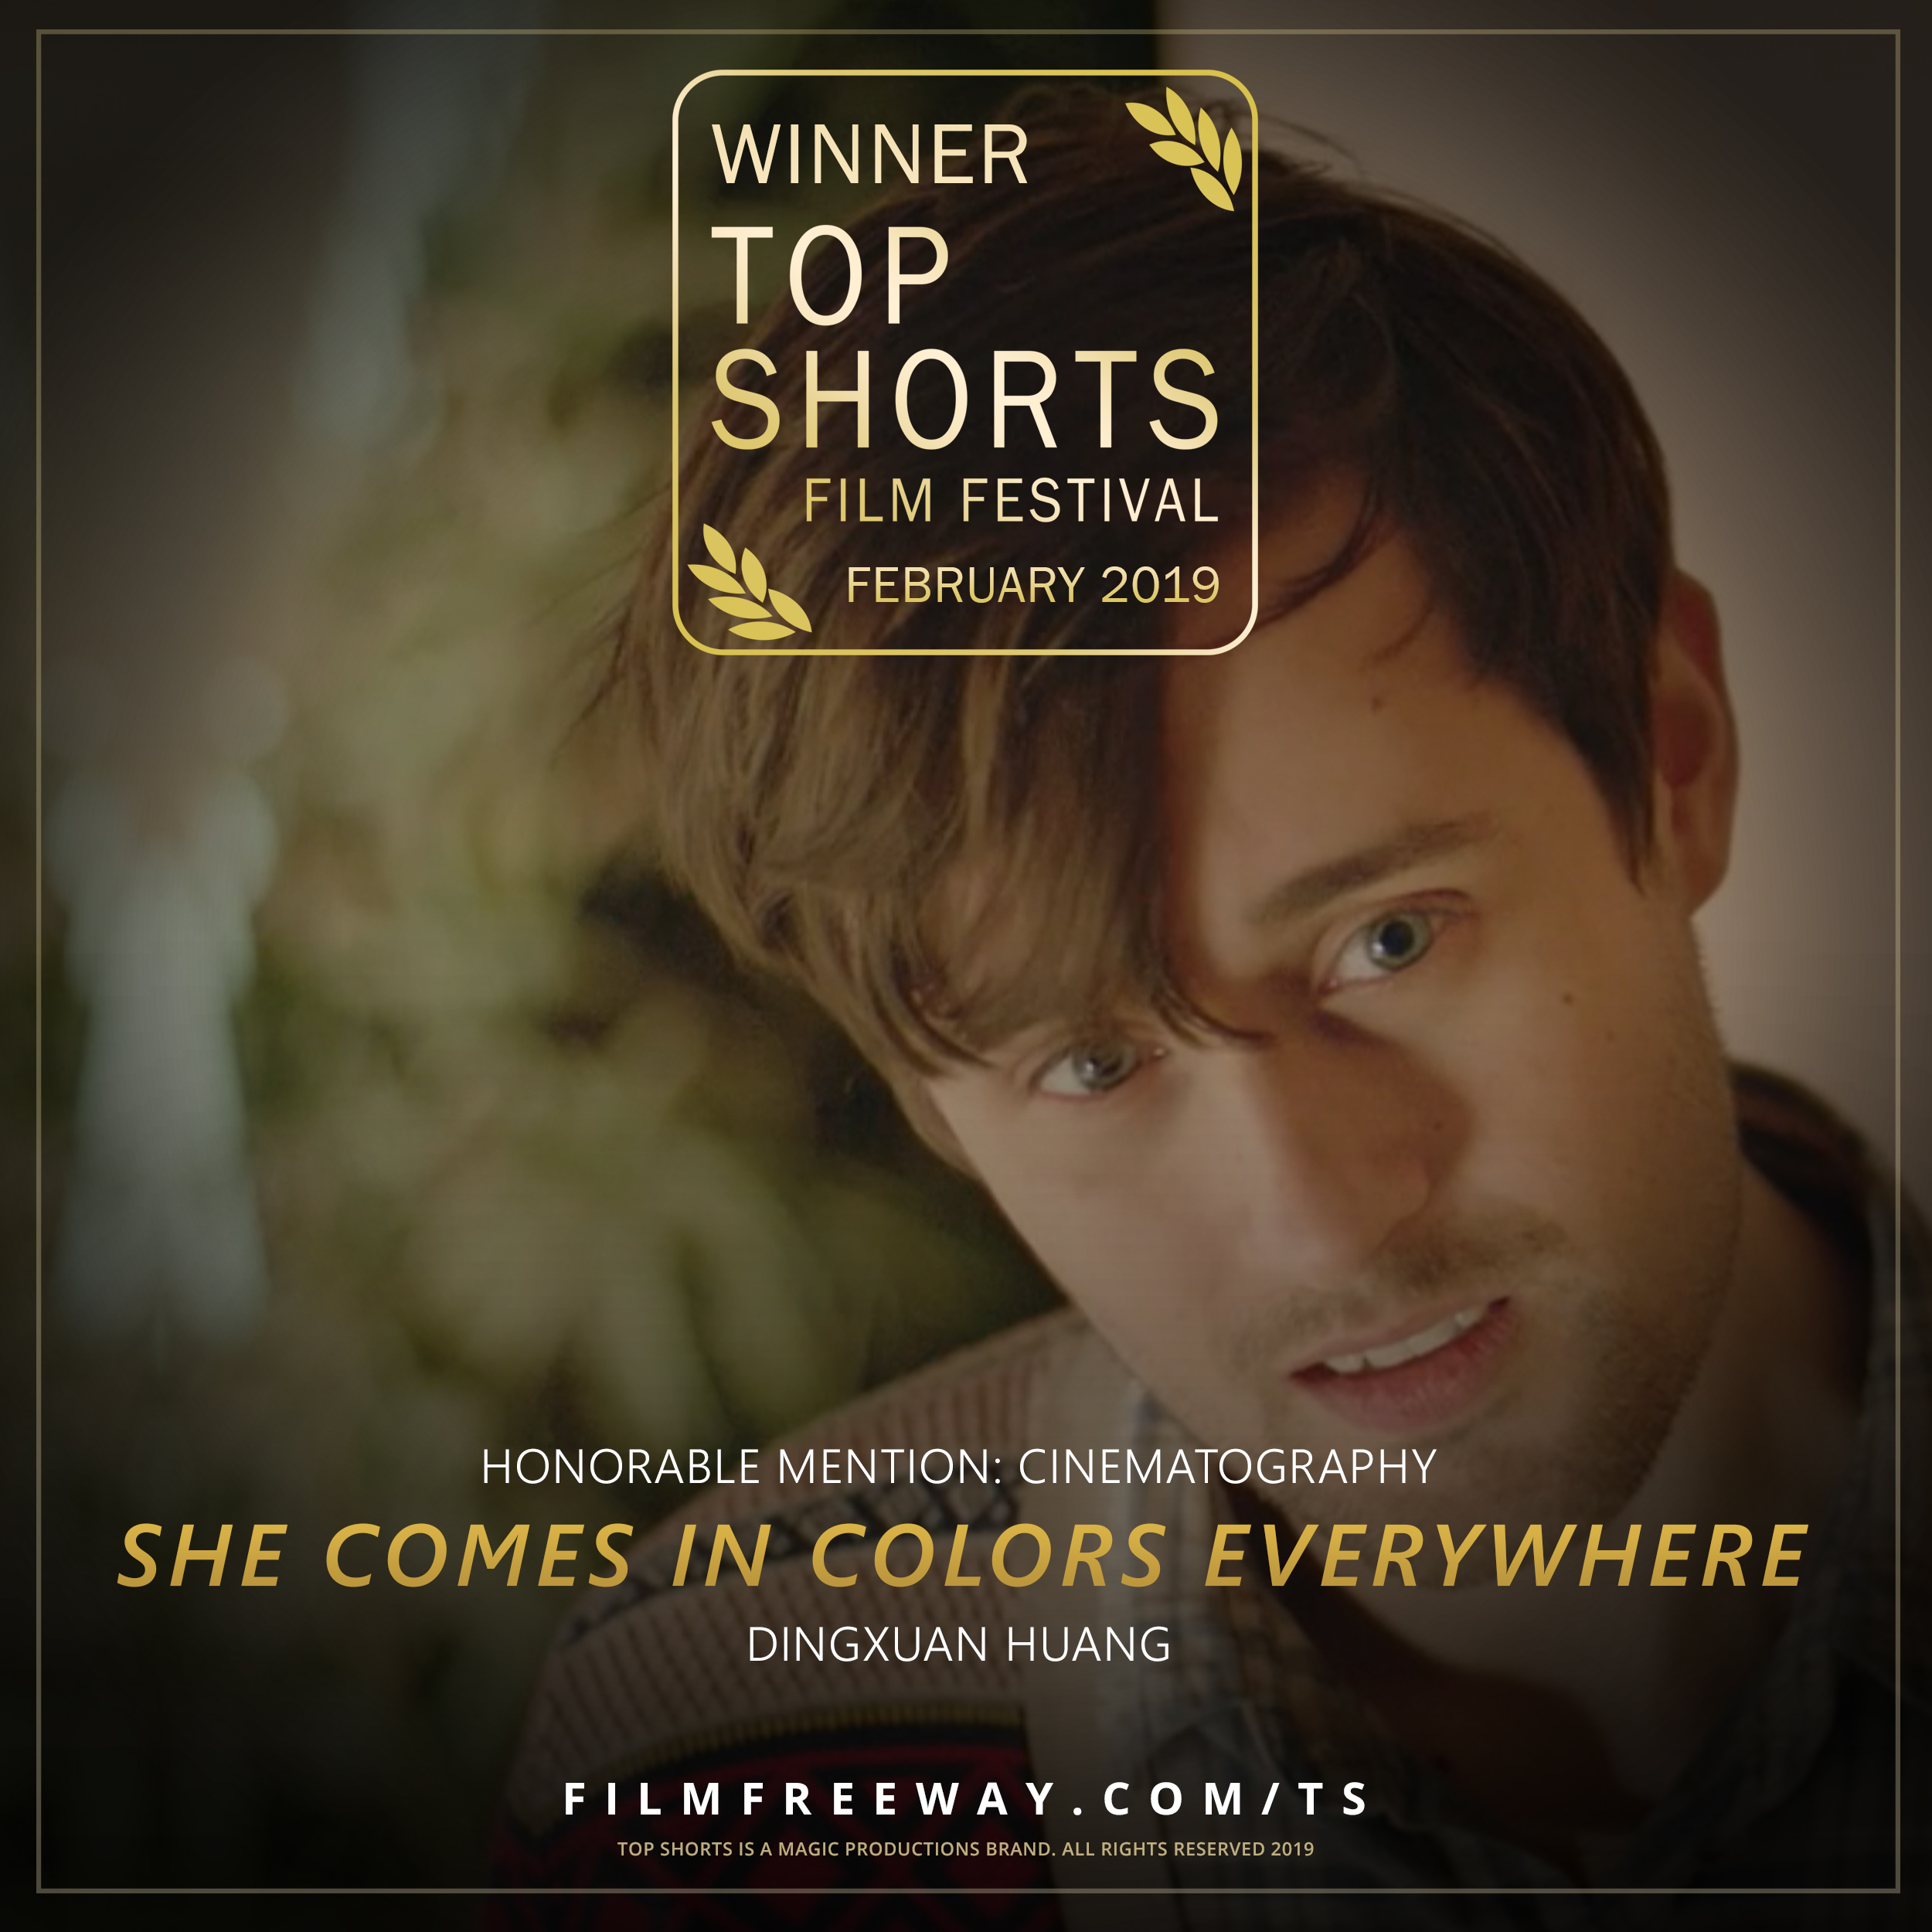 SHE COMES IN COLORS EVERYWHERE design